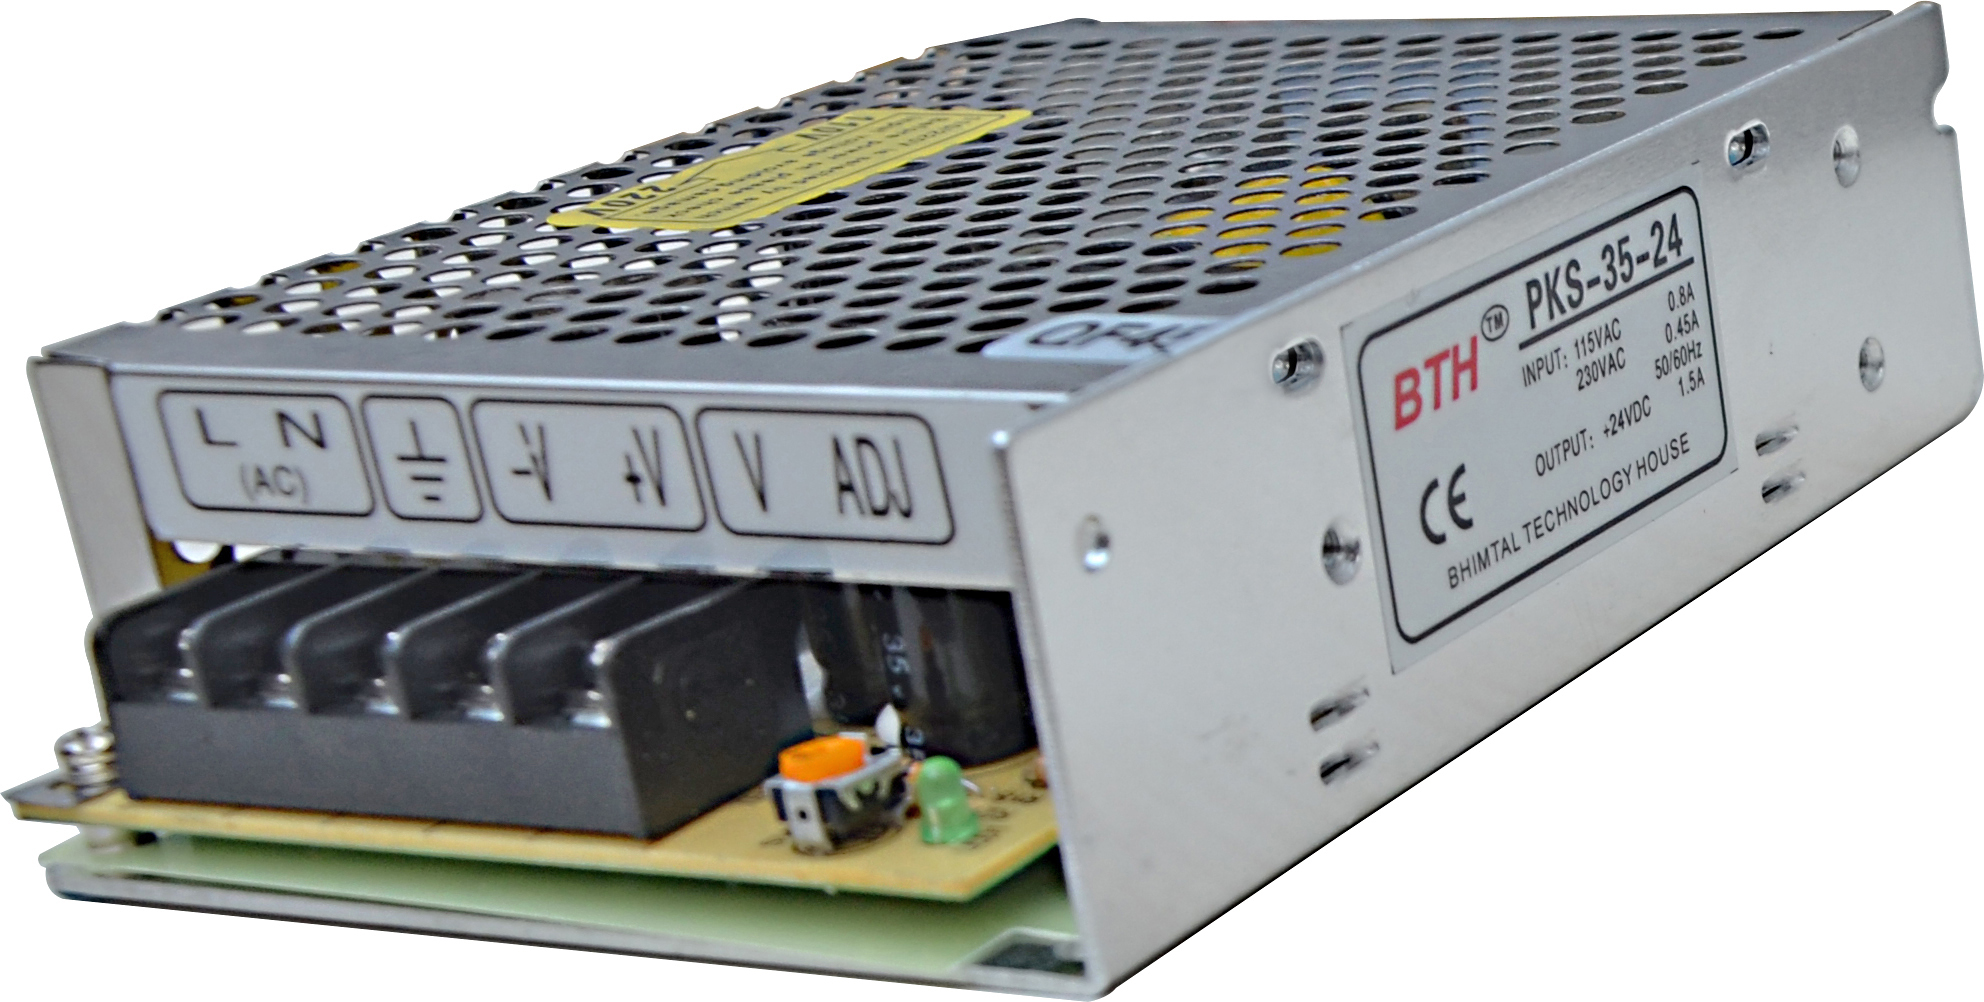 Buy Bth Dc Single Output Smps Pks 35 24 Online In India At Best Prices 24v Power Supply 18a